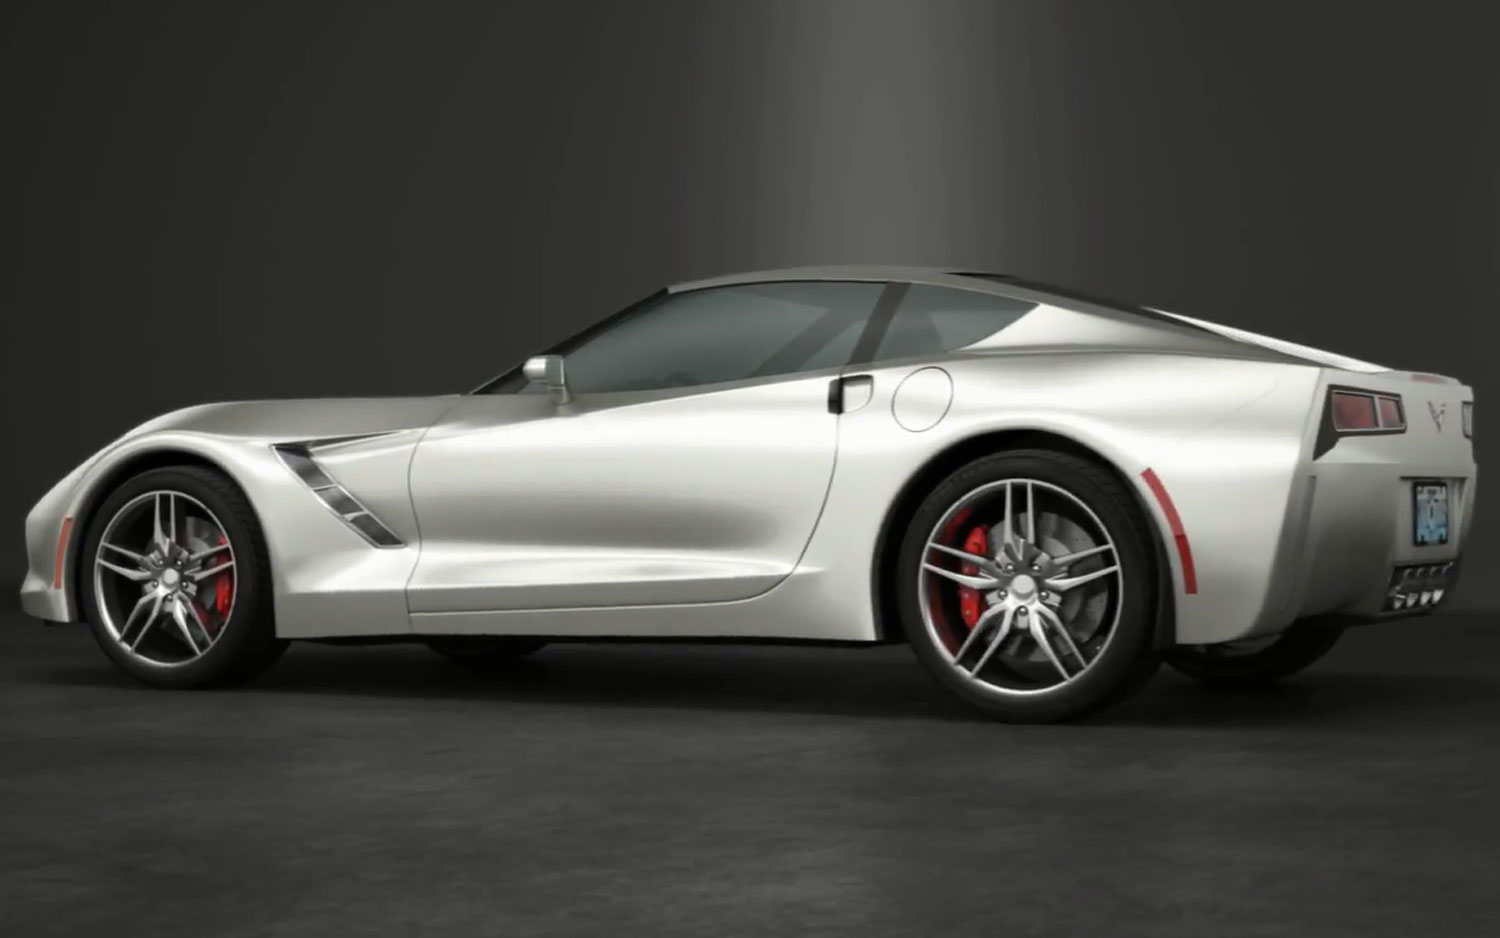 C7 Chevrolet Corvette Animation Left Rear Angle1